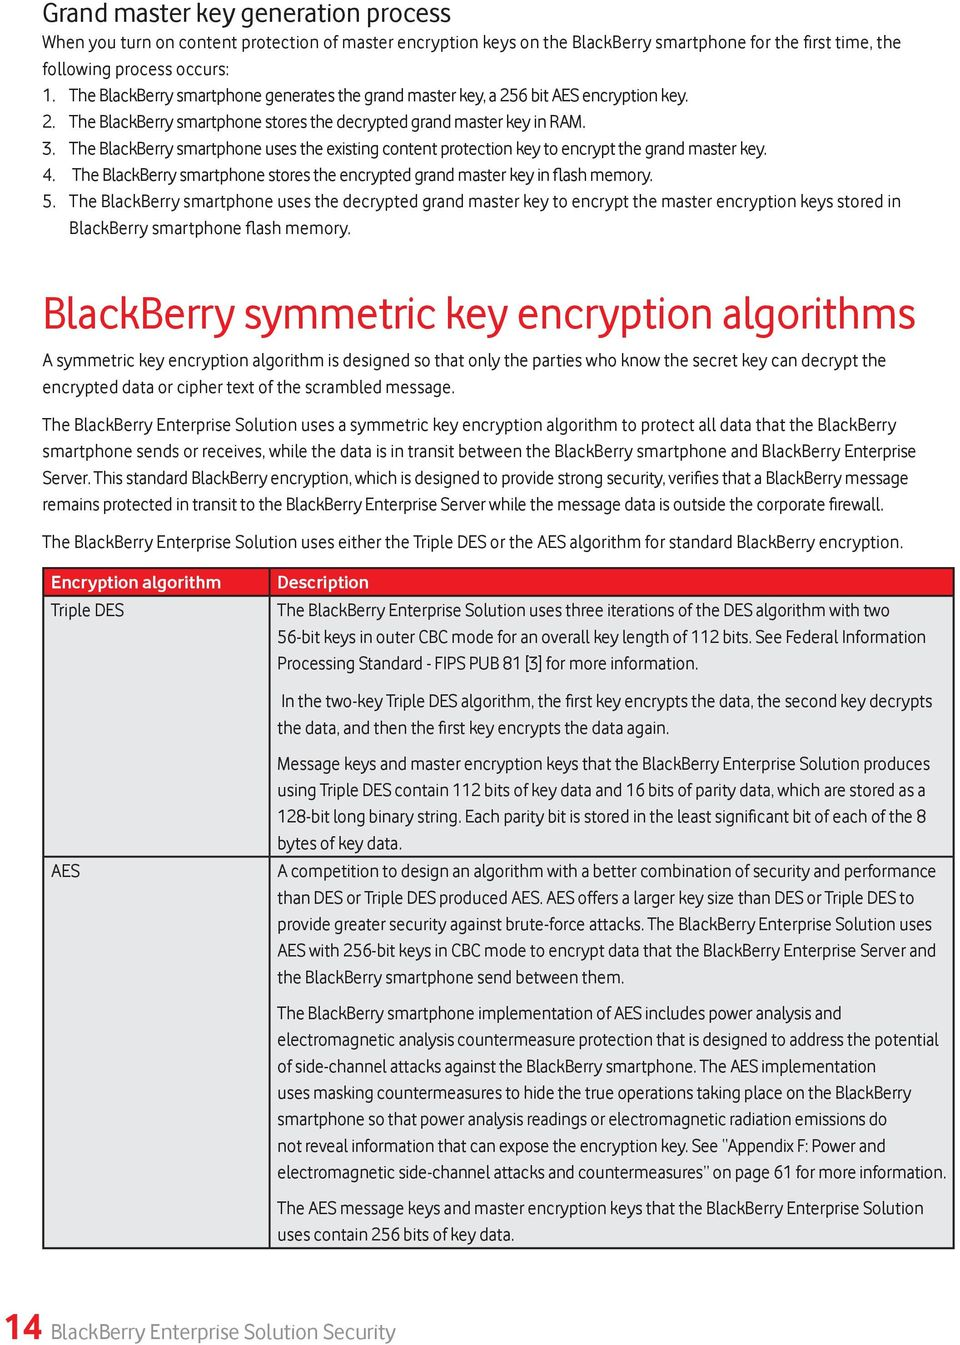 The BlackBerry smartphone uses the existing content protection key to encrypt the grand master key. 4. The BlackBerry smartphone stores the encrypted grand master key in flash memory. 5.